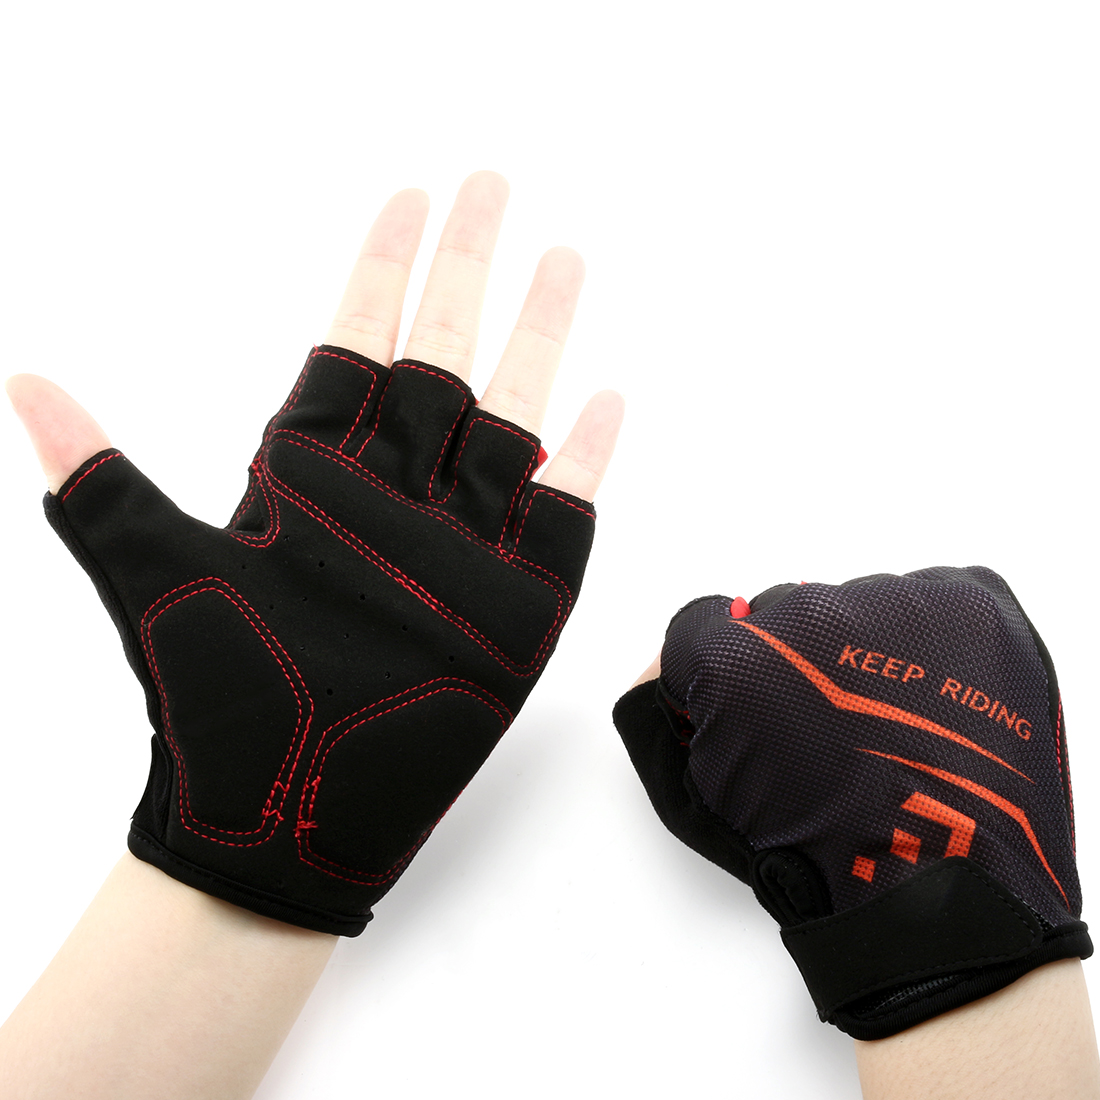 Outdoor Elasticized Fabric Sports Exercise Half Finger Cycling Gloves Palm Support Pair (Red M)